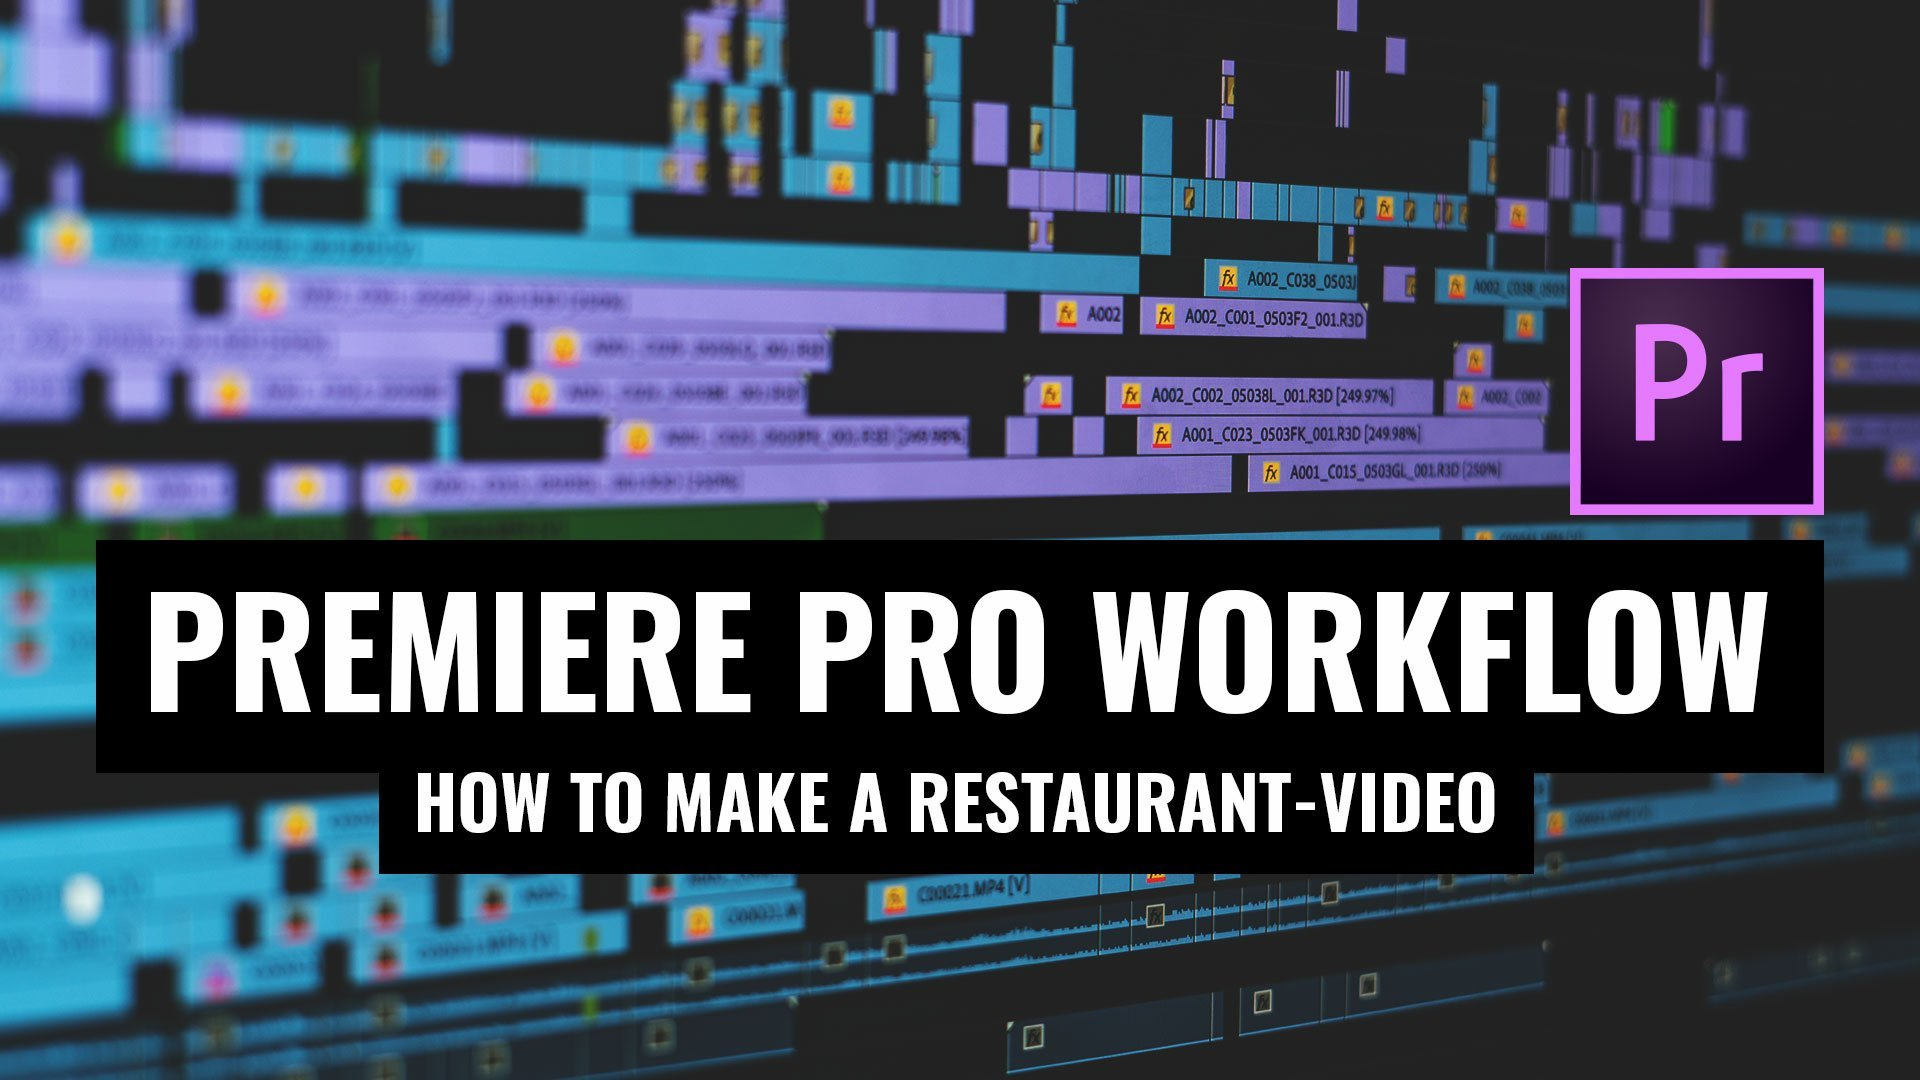 VIDEO EDITING IN PREMIERE PRO 2021: How to Edit a Restaurant-Client Video START to FINISH